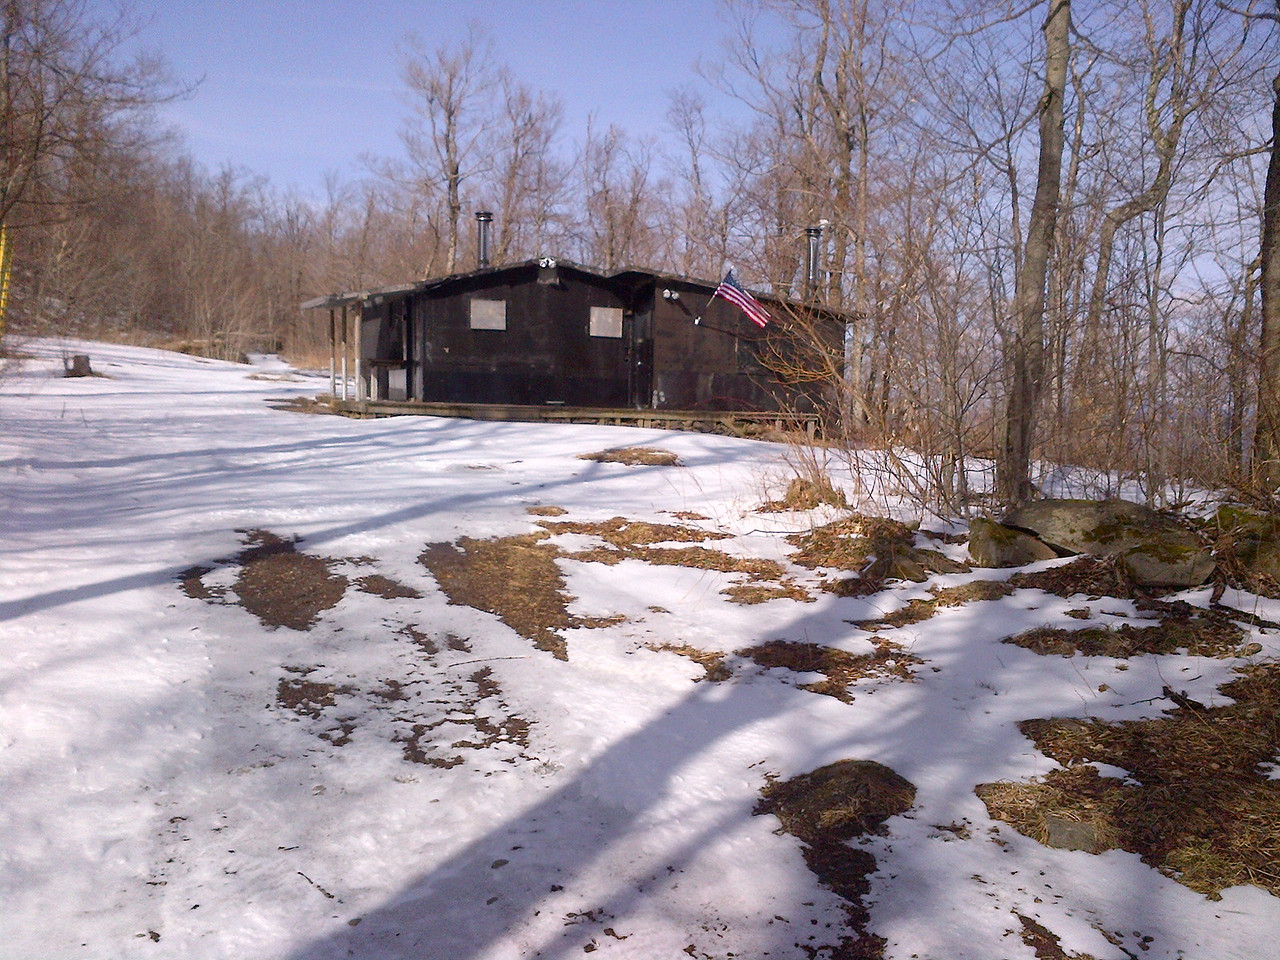 The logging road leads to this hunters cabin. From here you take a sharp right and head up until you can ascend no more.